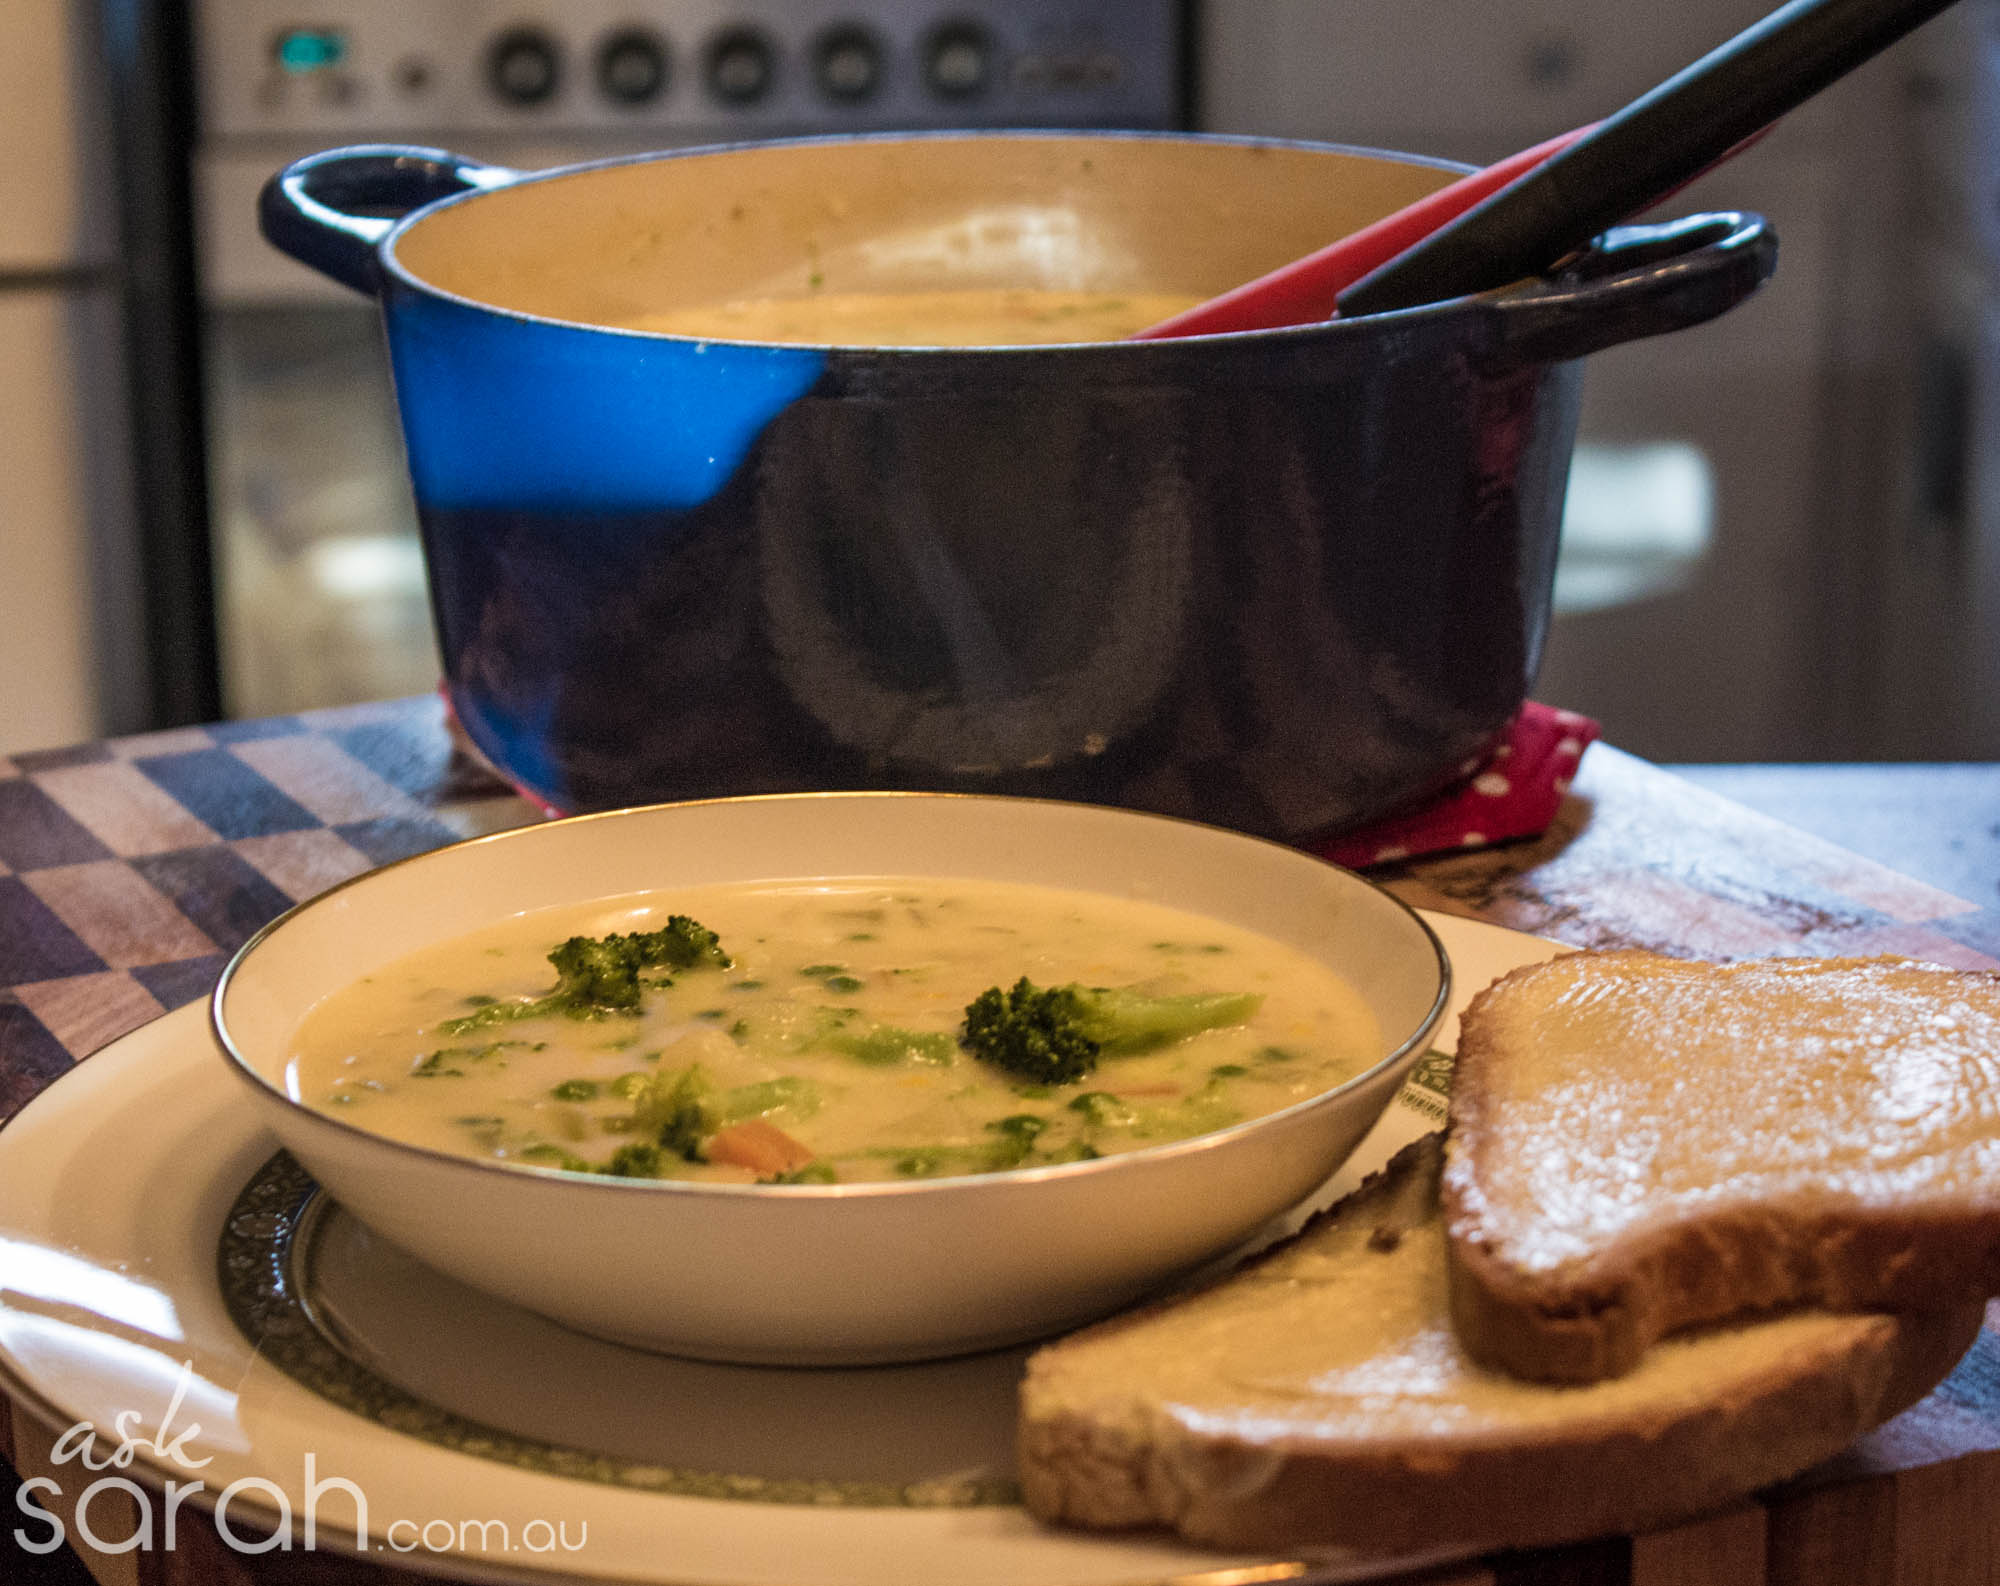 Recipe: Creamy Cheddar & Vegetable Chowder